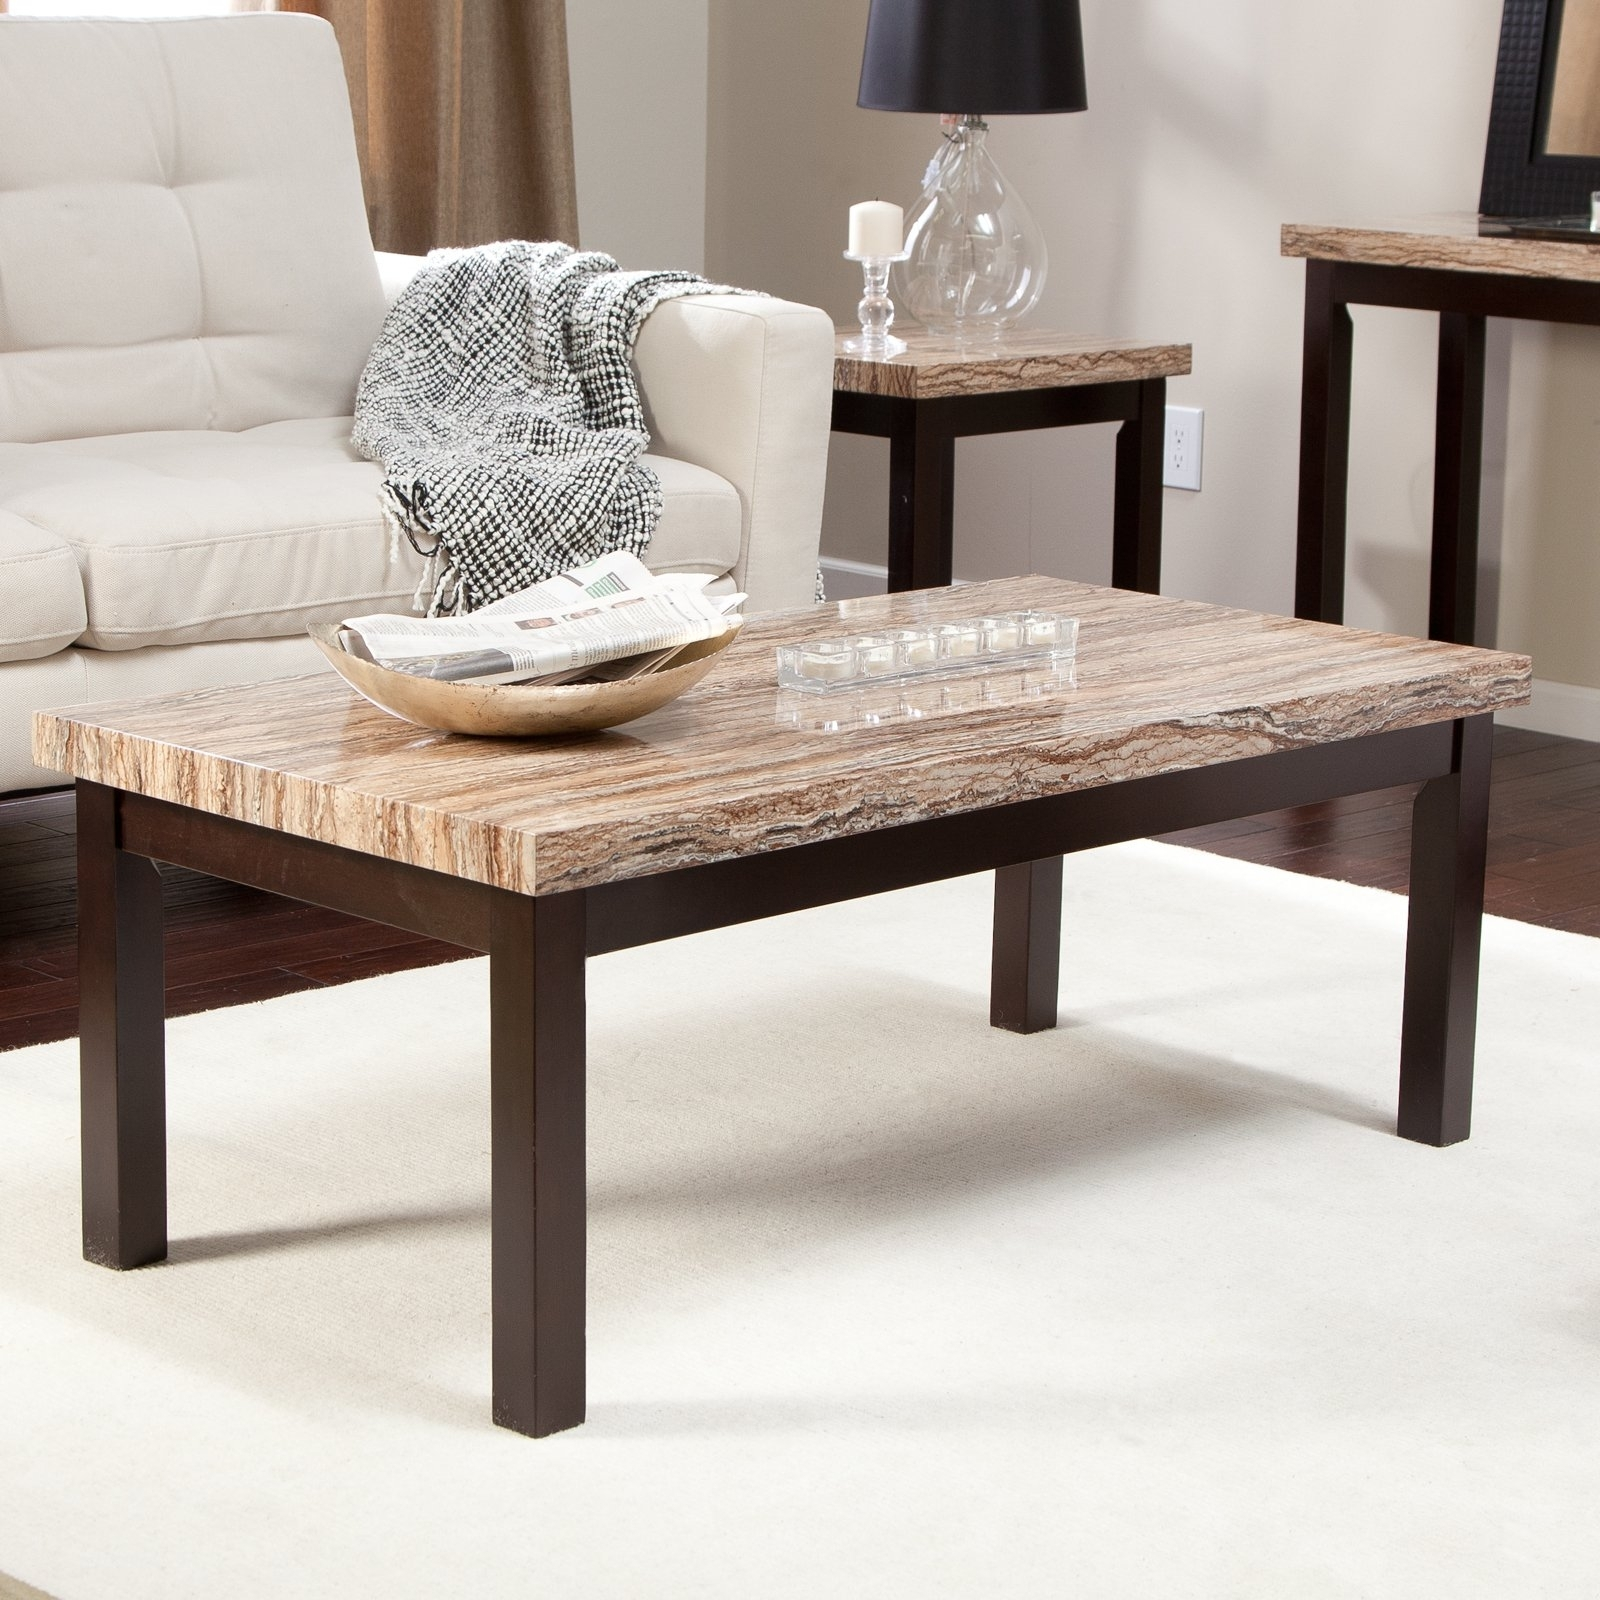 Marble Coffee Table - Coffee Table Ideas throughout Alcide Rectangular Marble Coffee Tables (Image 13 of 30)